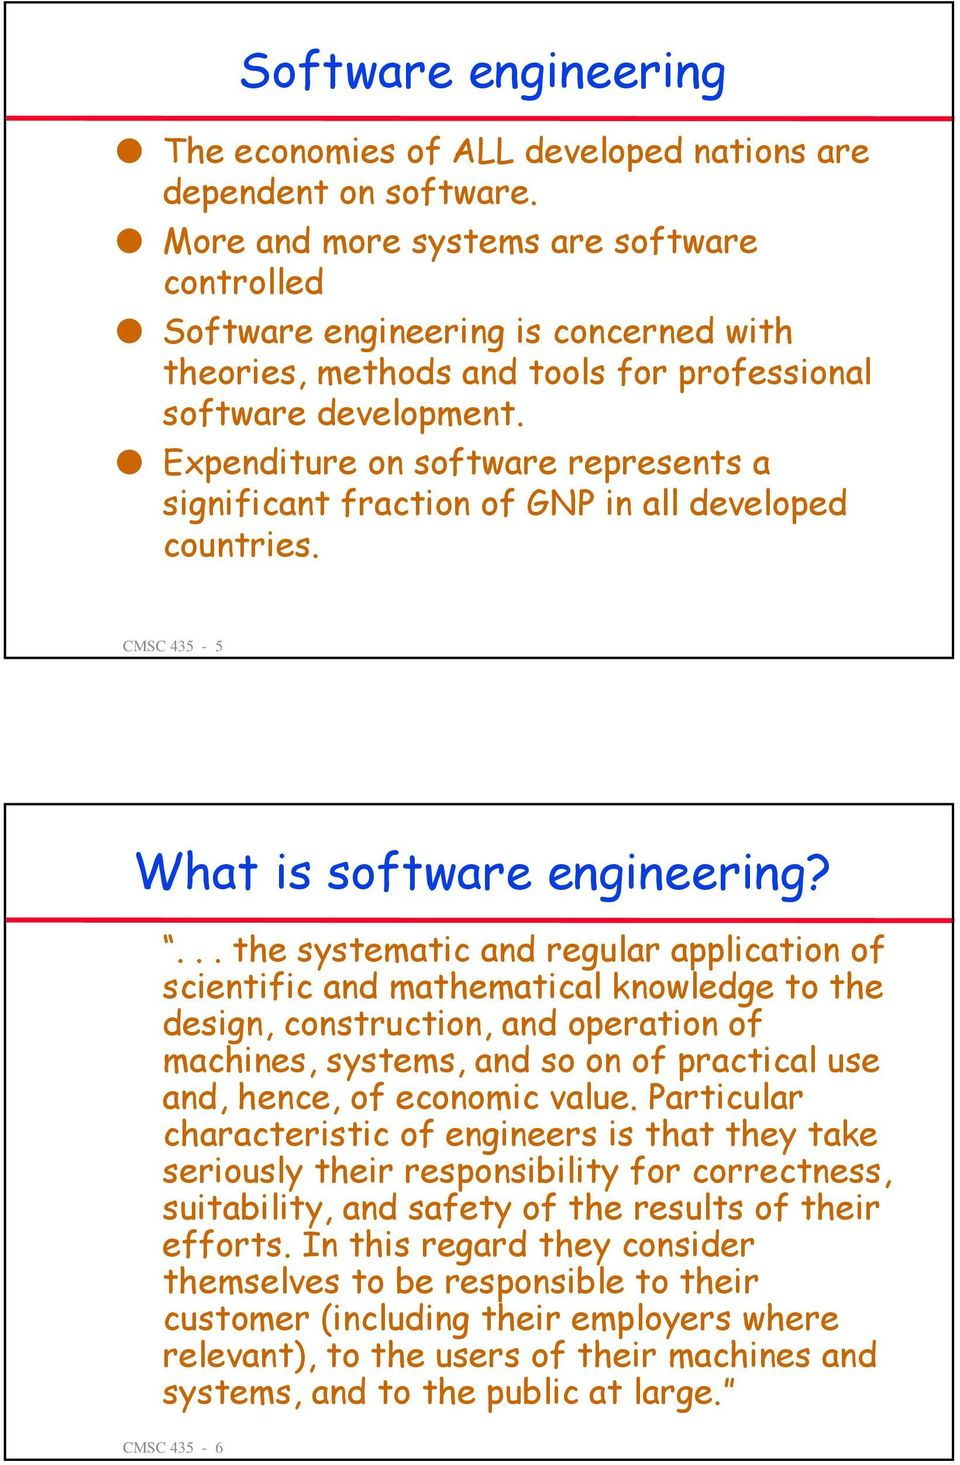 Expenditure on software represents a significant fraction of GNP in all developed countries. CMSC 435-5 What is software engineering?